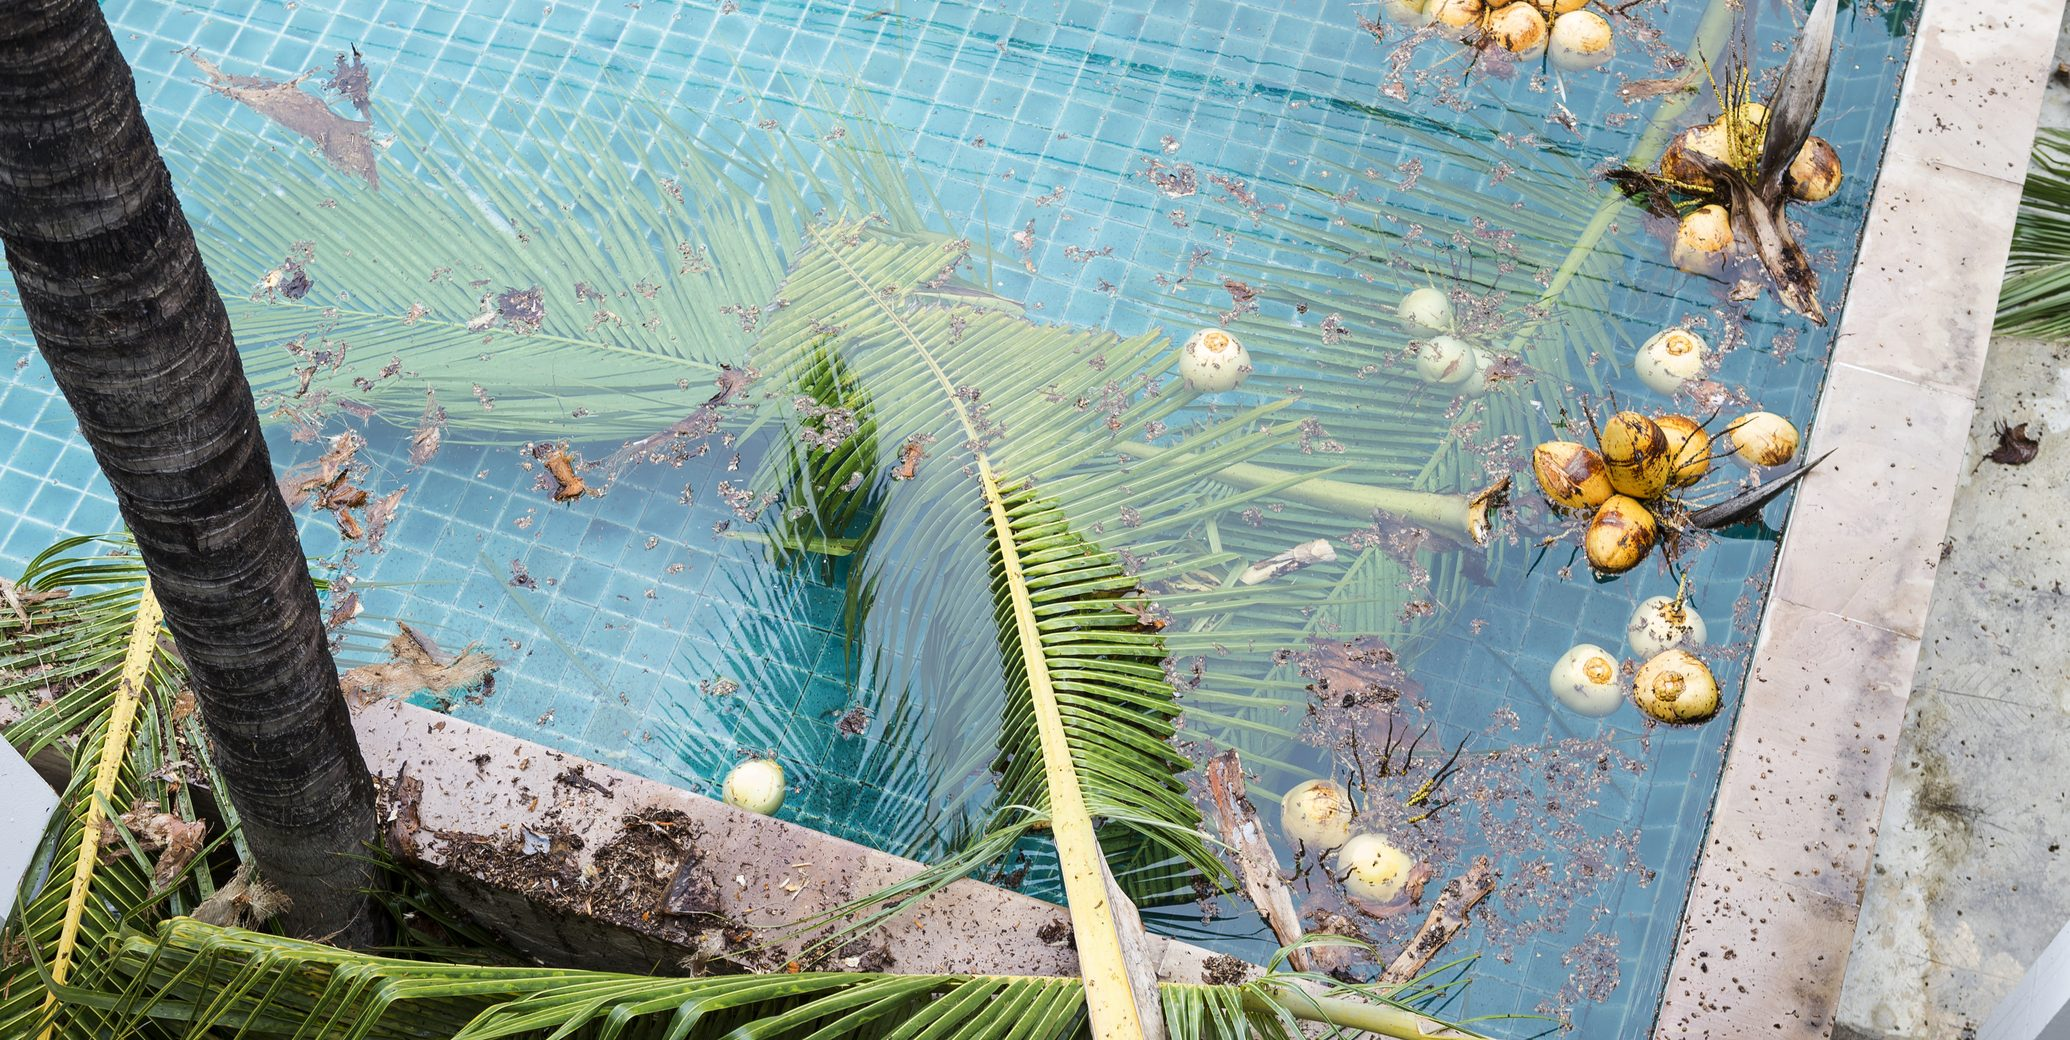 How to Clean Your Pool After a Hurricane